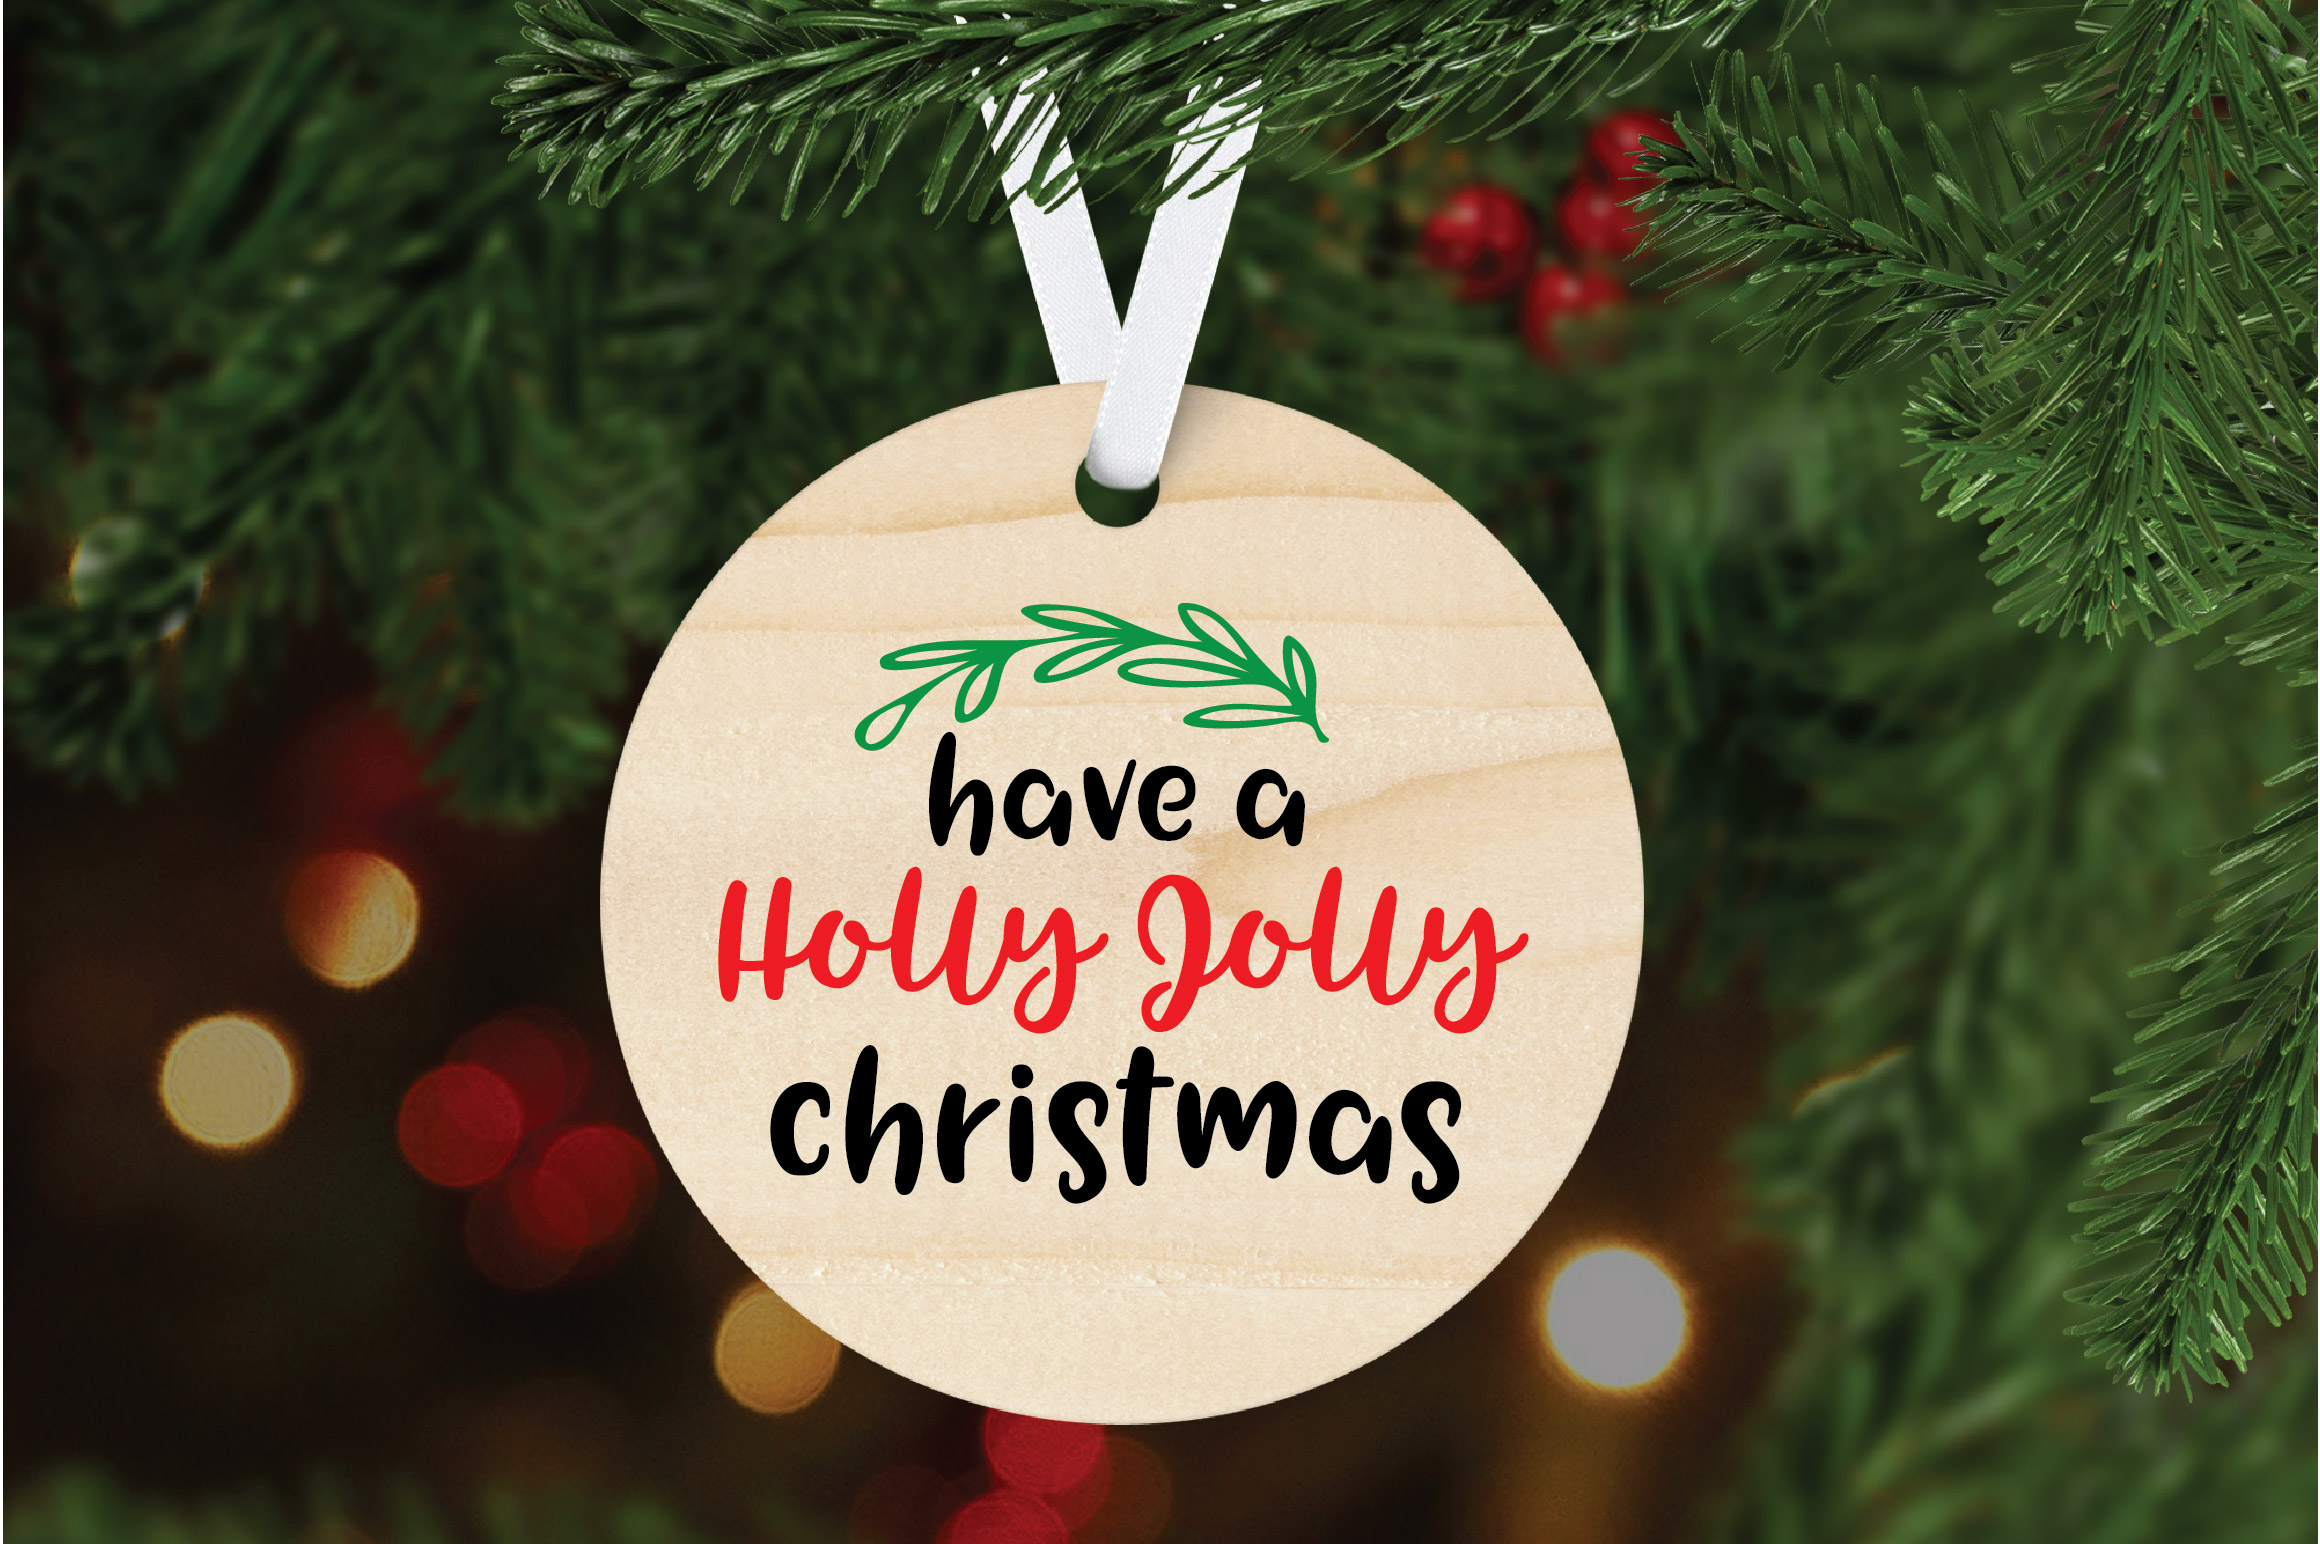 Have a Holly Jolly Christmas - Christmas SVG Cut File - DXF